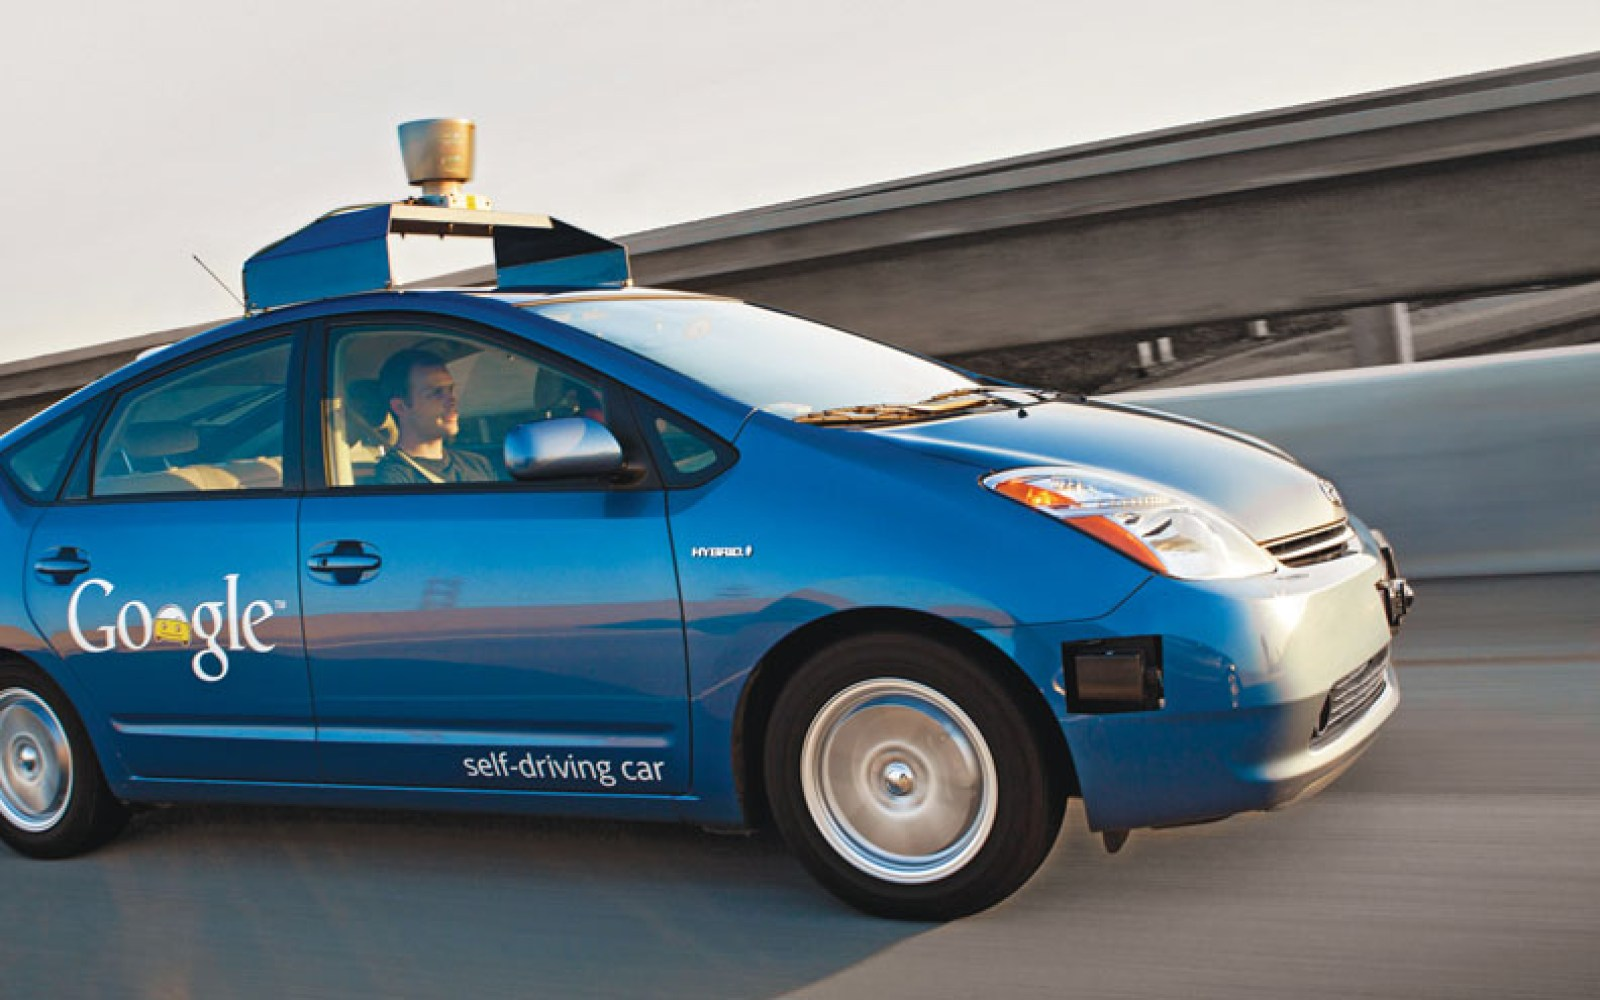 Google argues it, not the person in the driver's seat, should receive any tickets for its self-driving cars